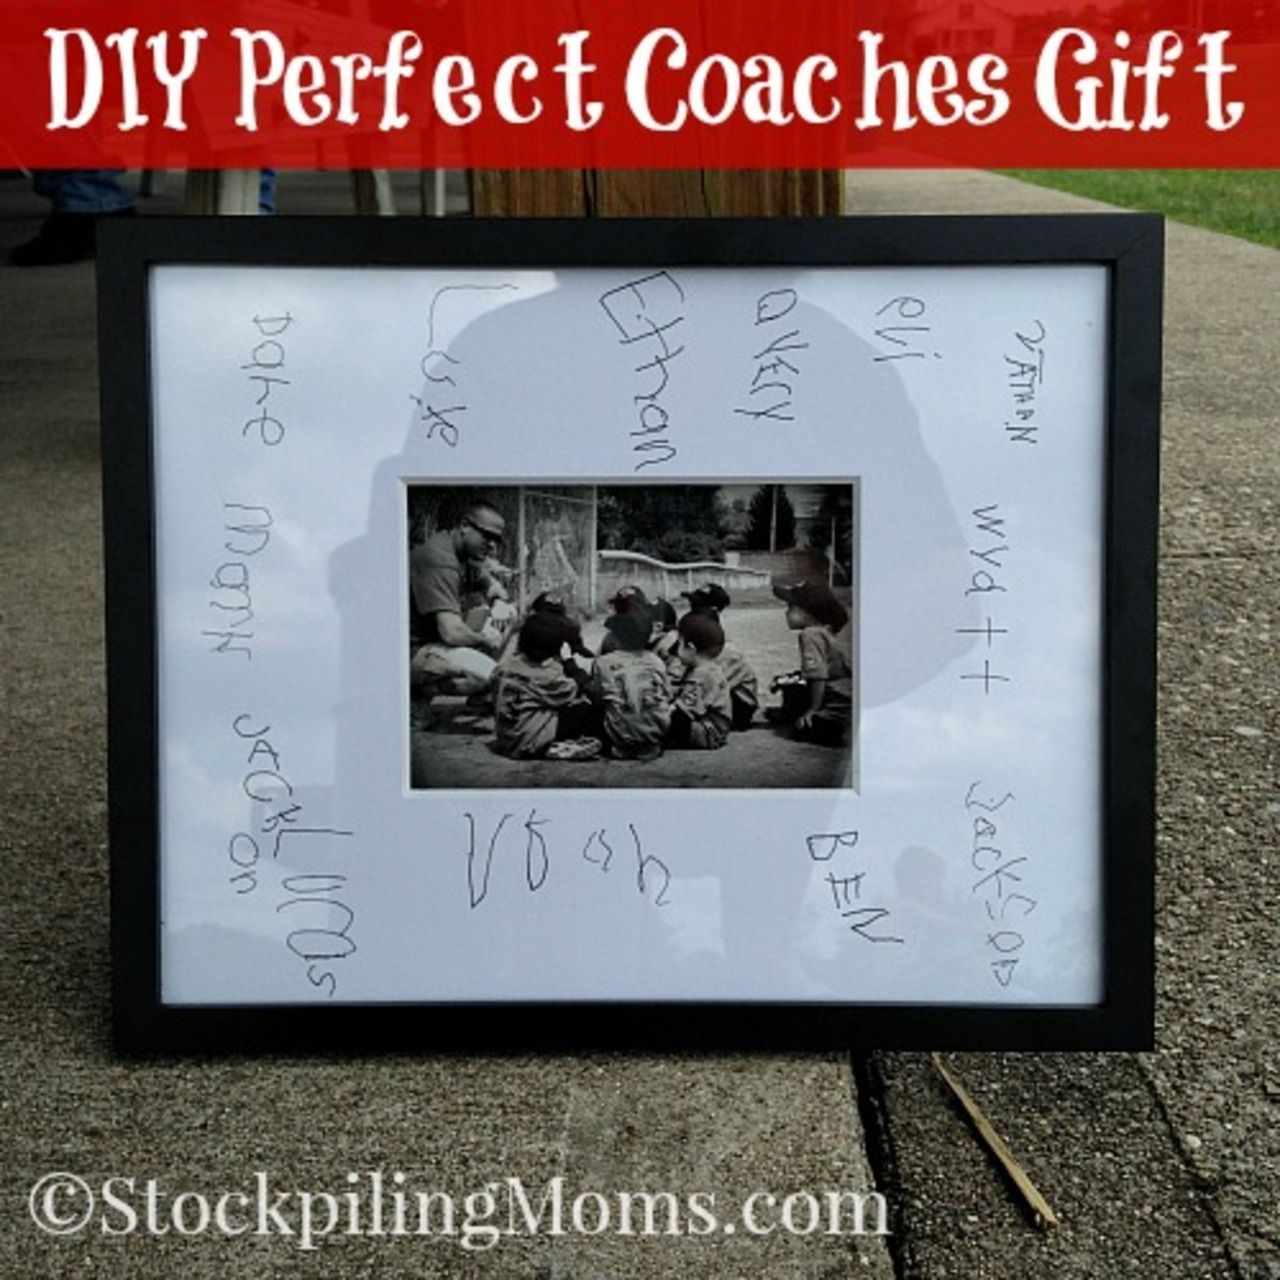 Baseball Practice Comes First | Coach gifts, Gift and Cheer